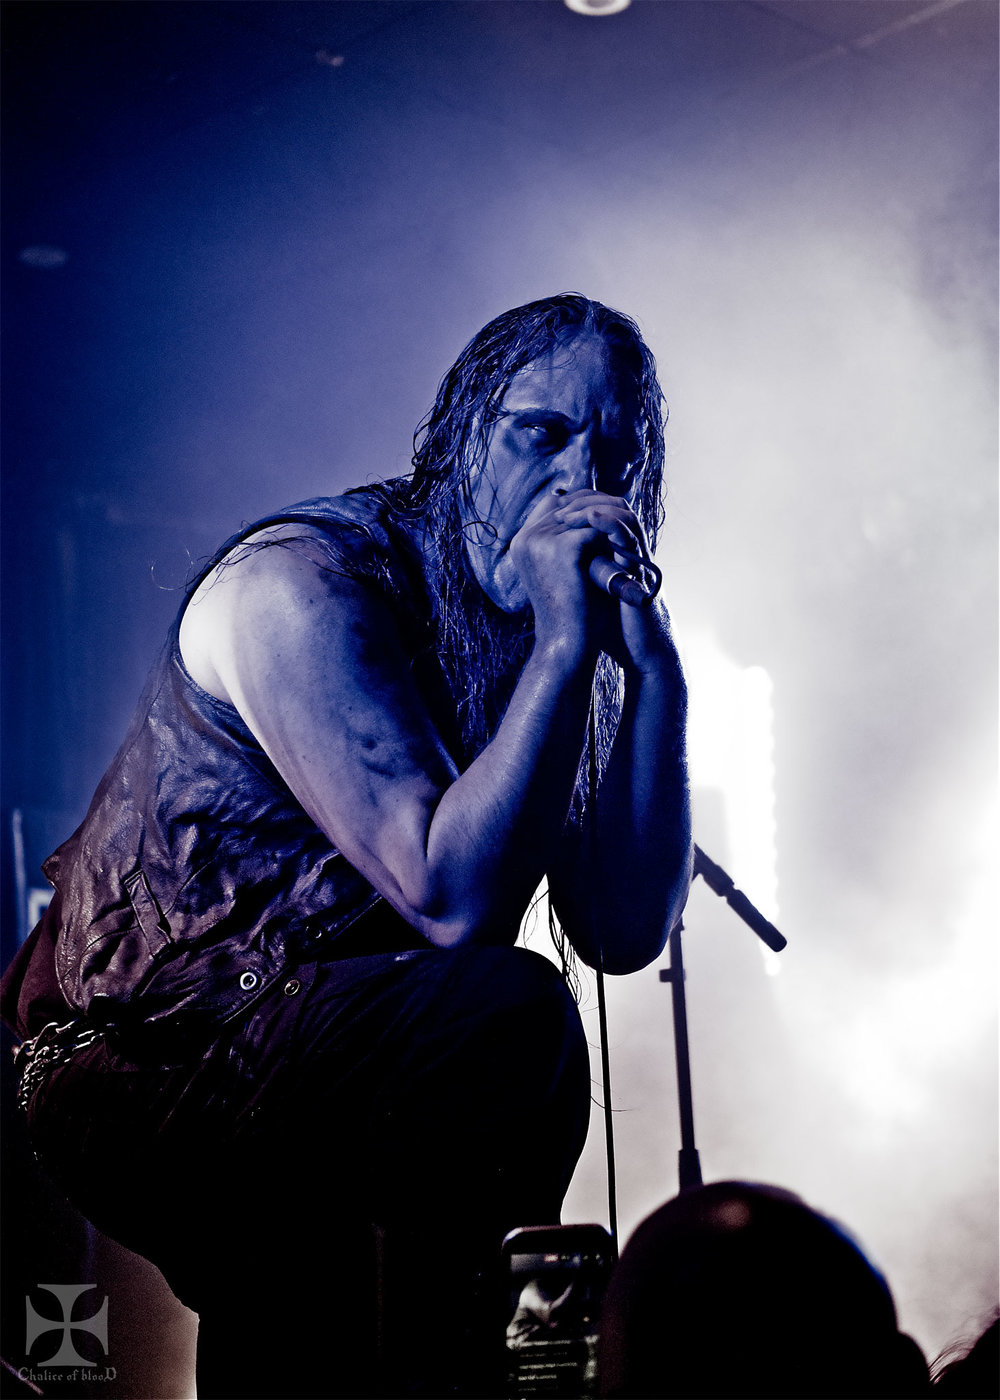 Marduk---104-watermarked.jpg